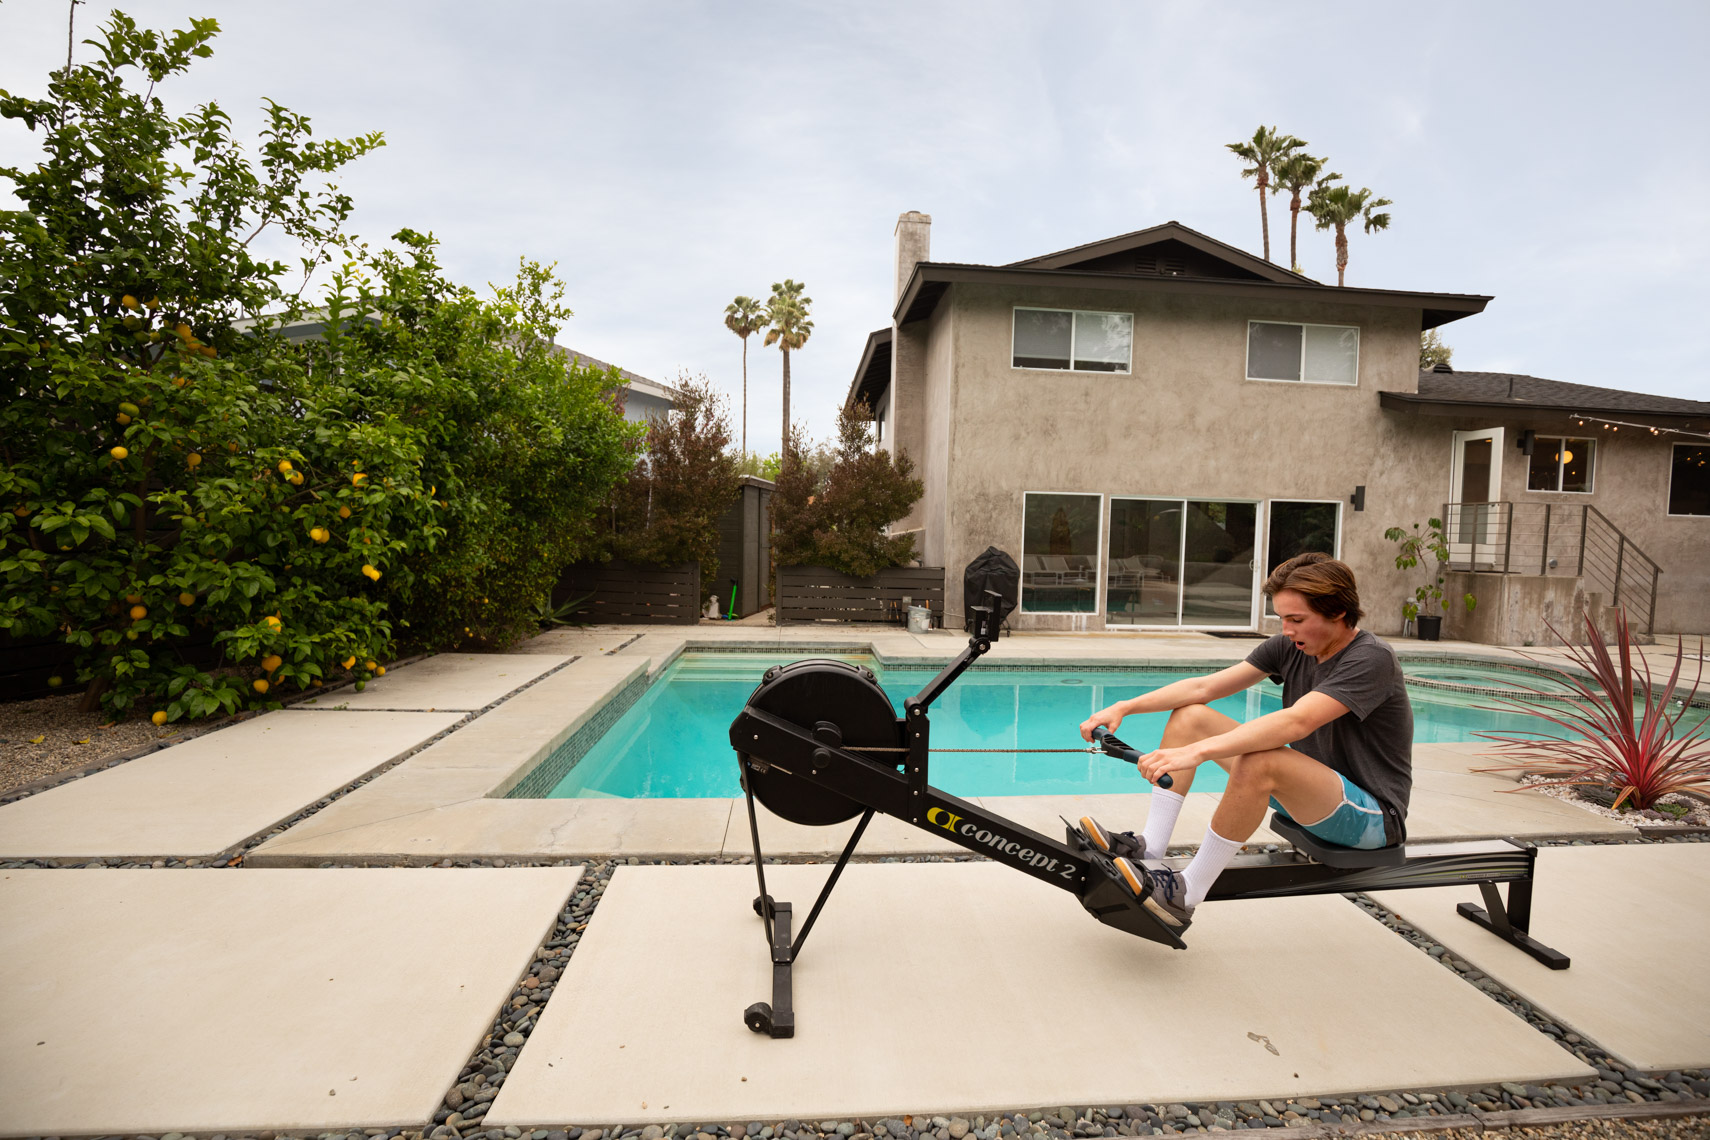 Backyard crew rowing machine